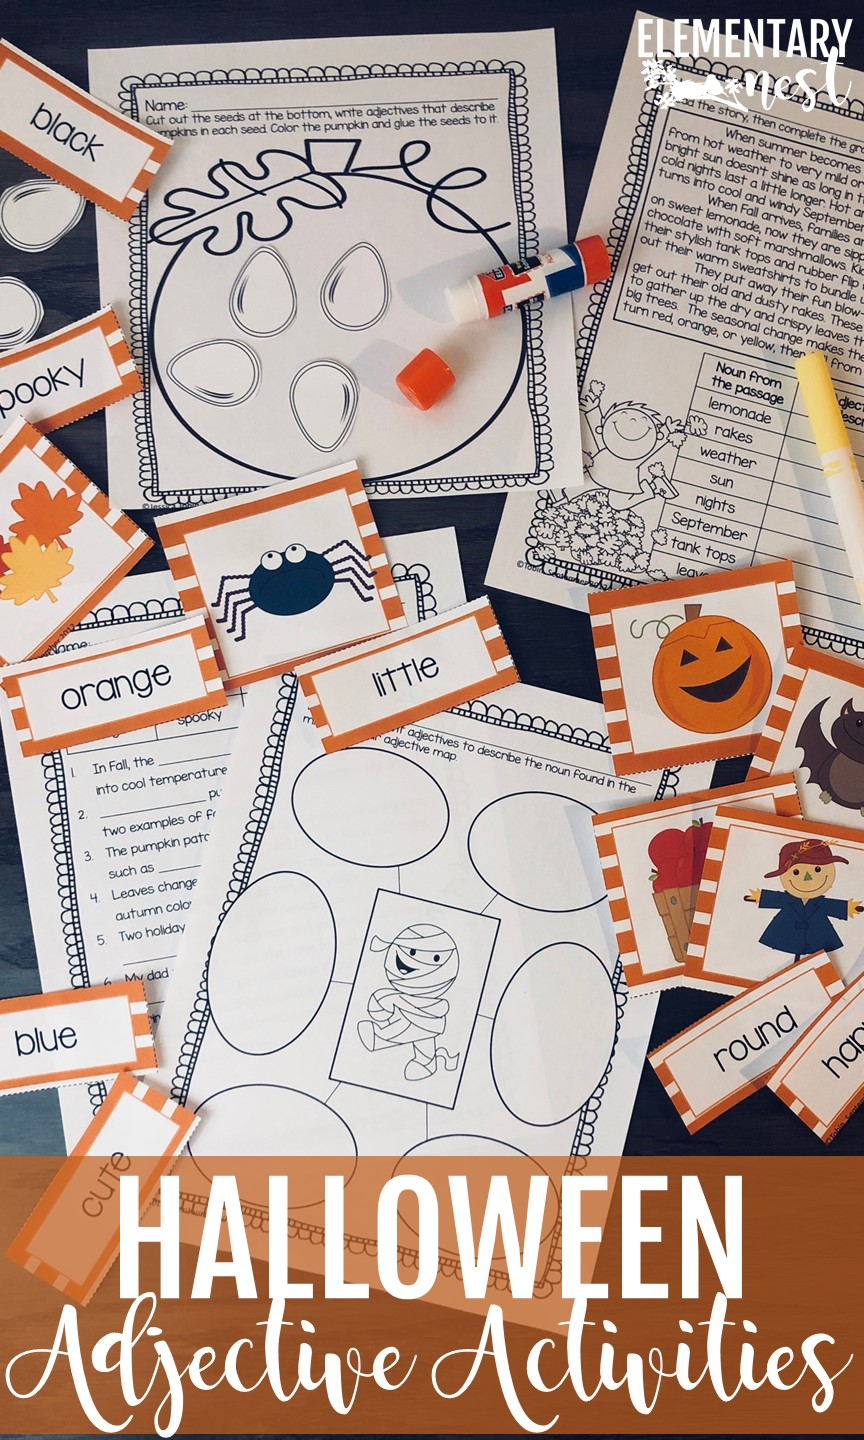 Resources for teaching adjectives in October with Halloween adjective activities.